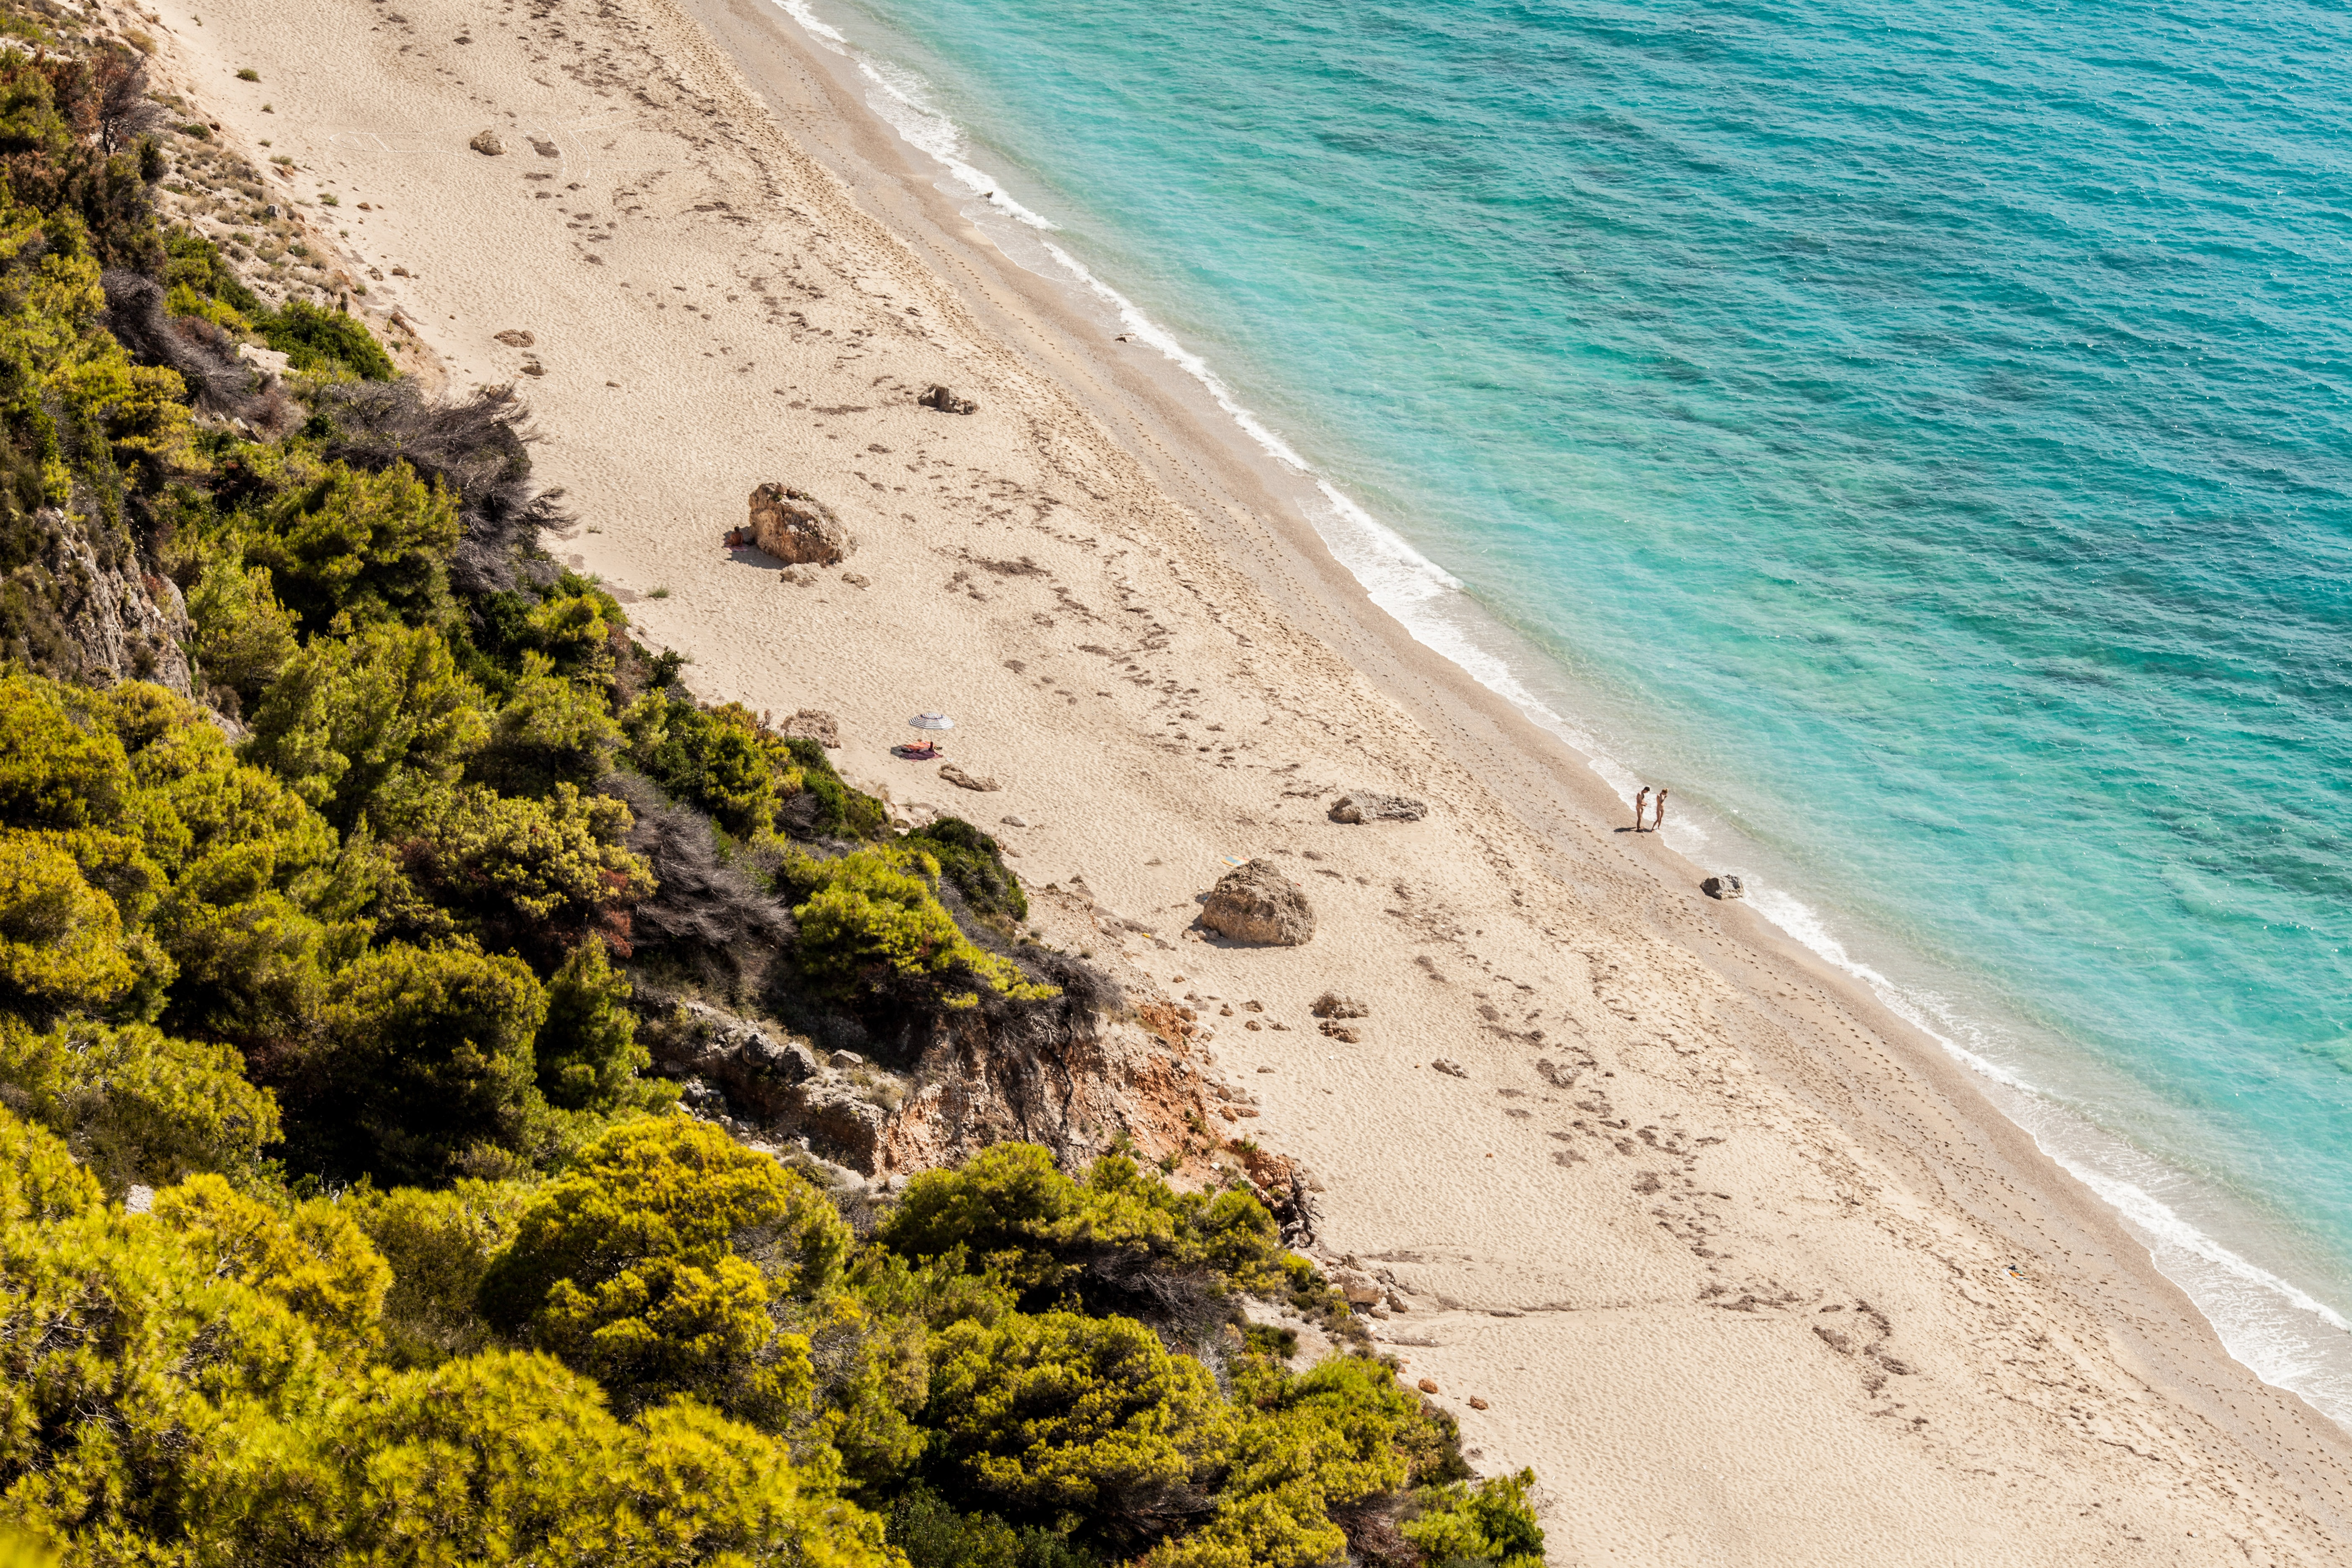 10 Best Things to do in the Ionian Islands, Greece